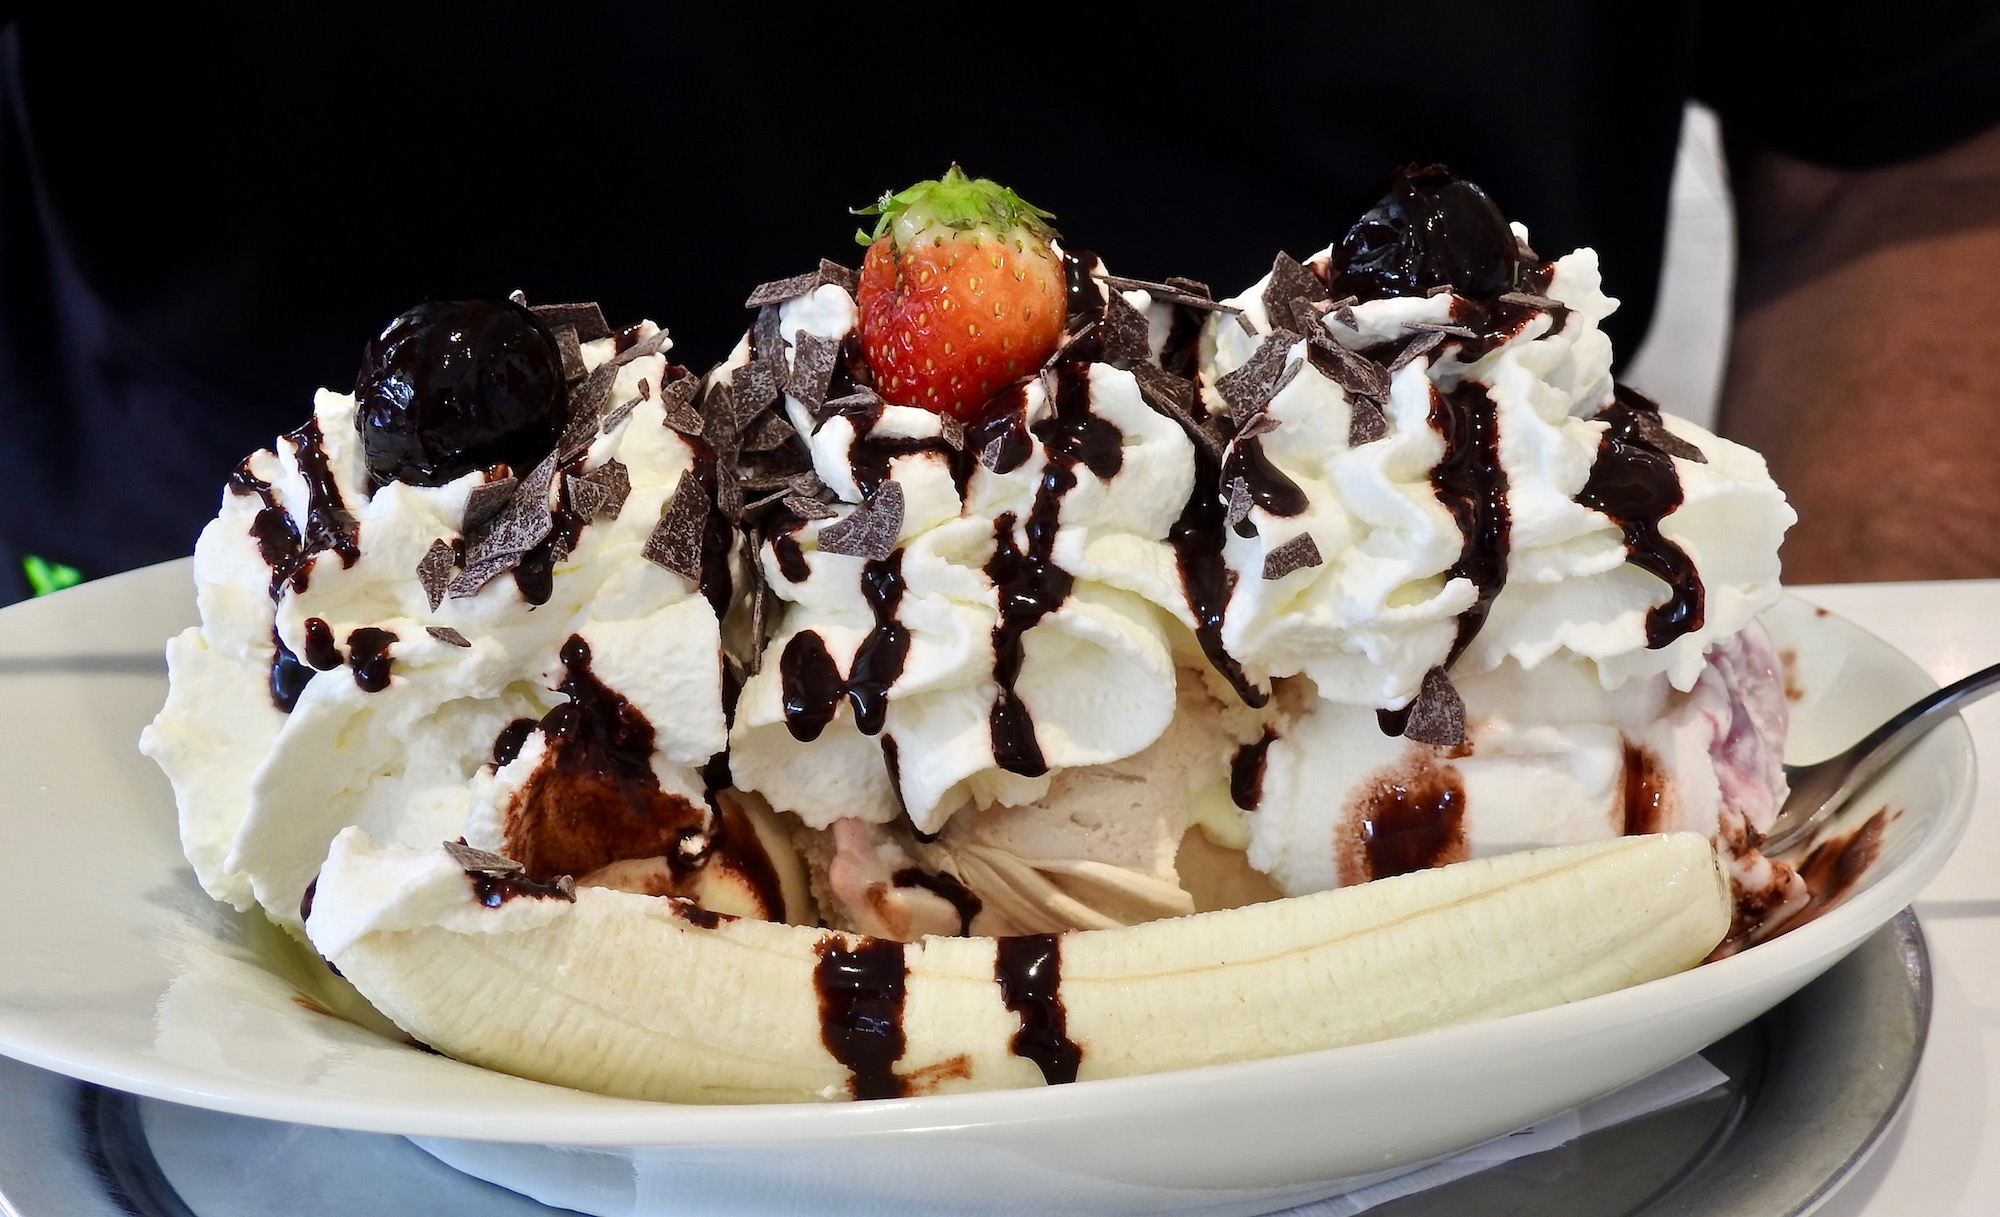 Banana Split at the Gelato place on Market Square